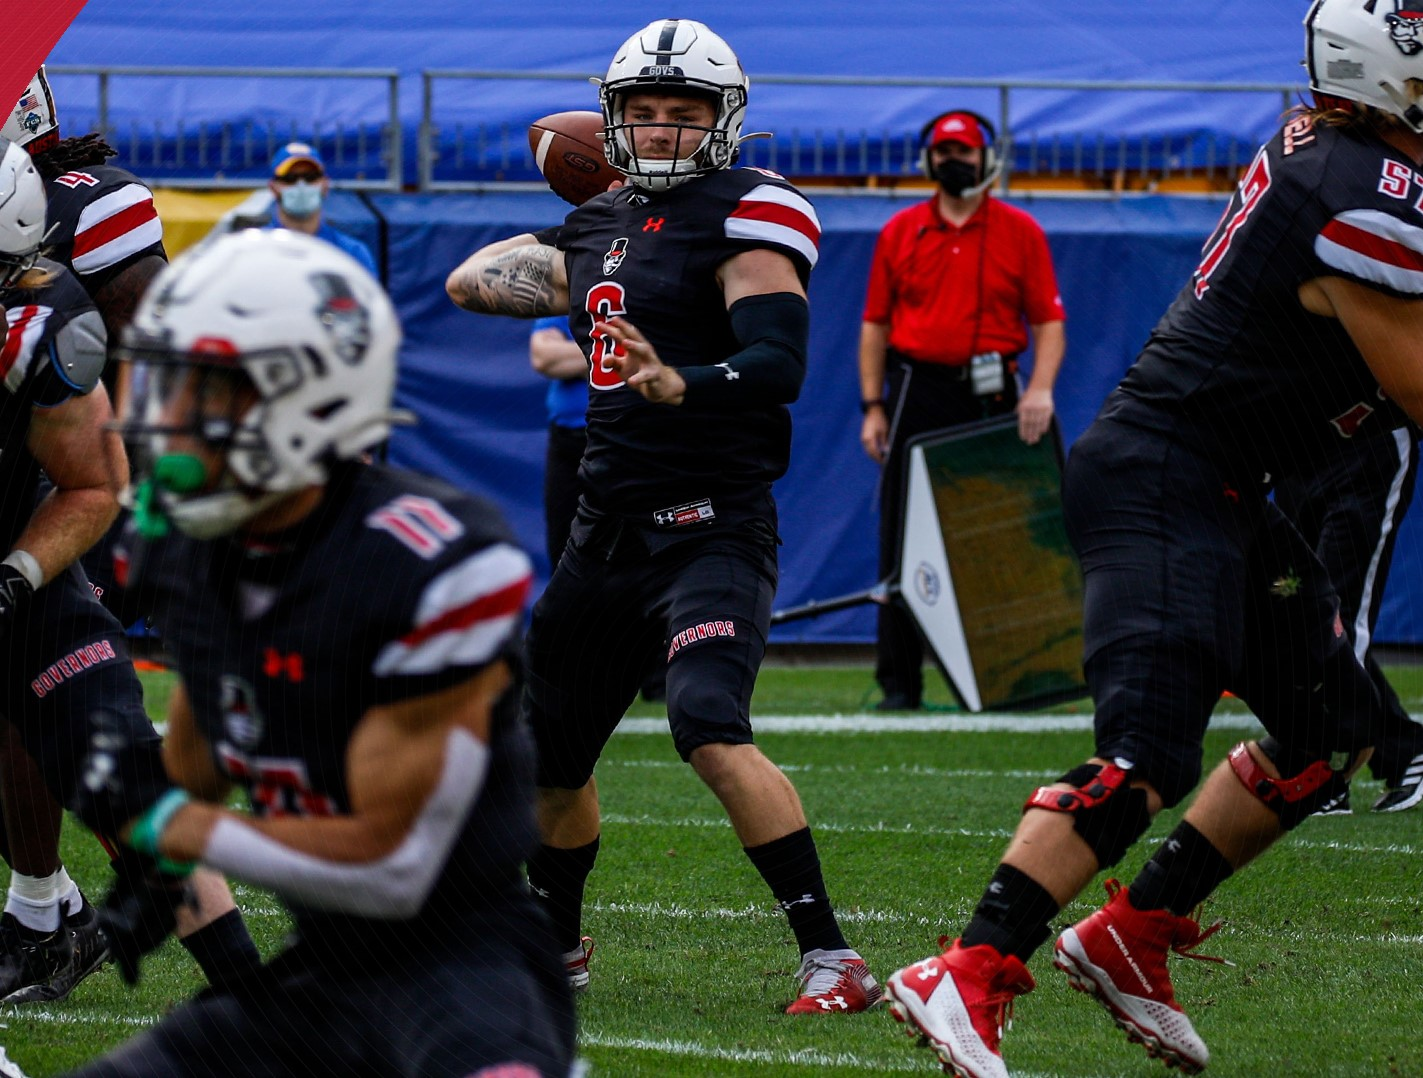 Quarterback Jeremiah Oatsvall prepares for a pass against the Pittsburgh Panthers | APSU SPORTS INFORMATION